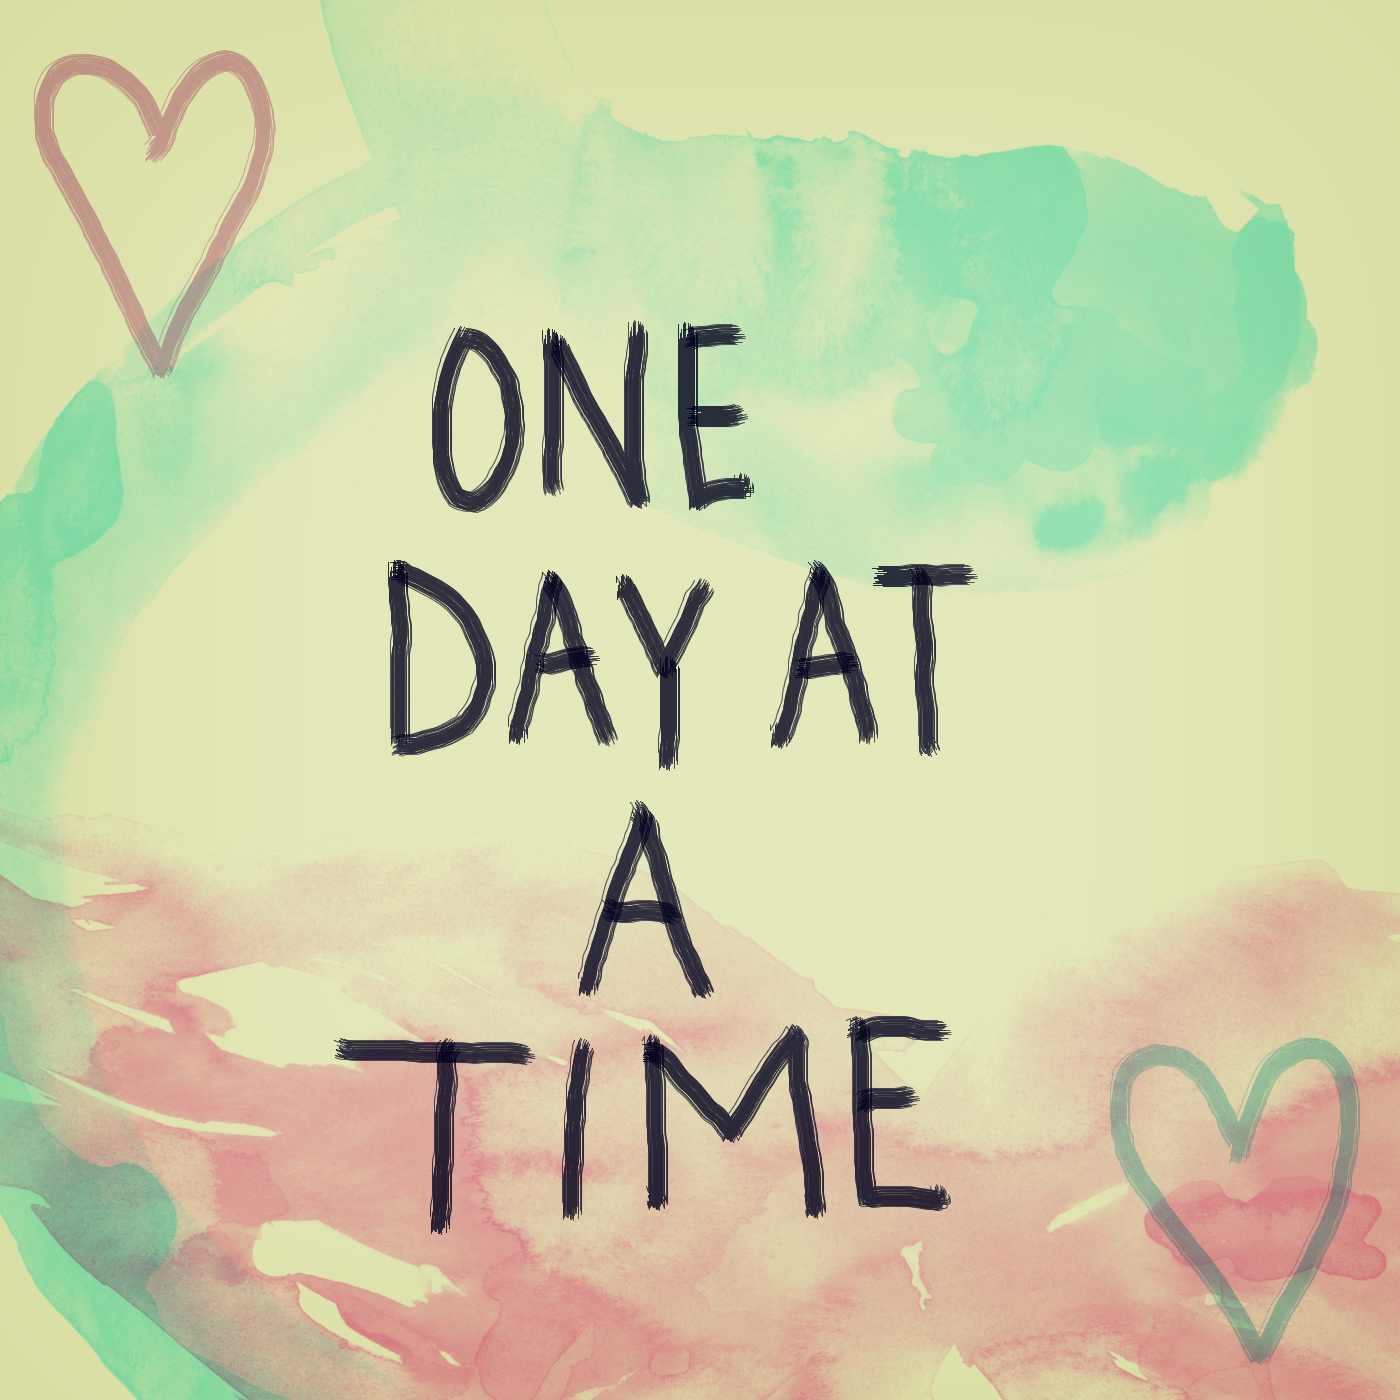 one day at a time | soletshangout.com